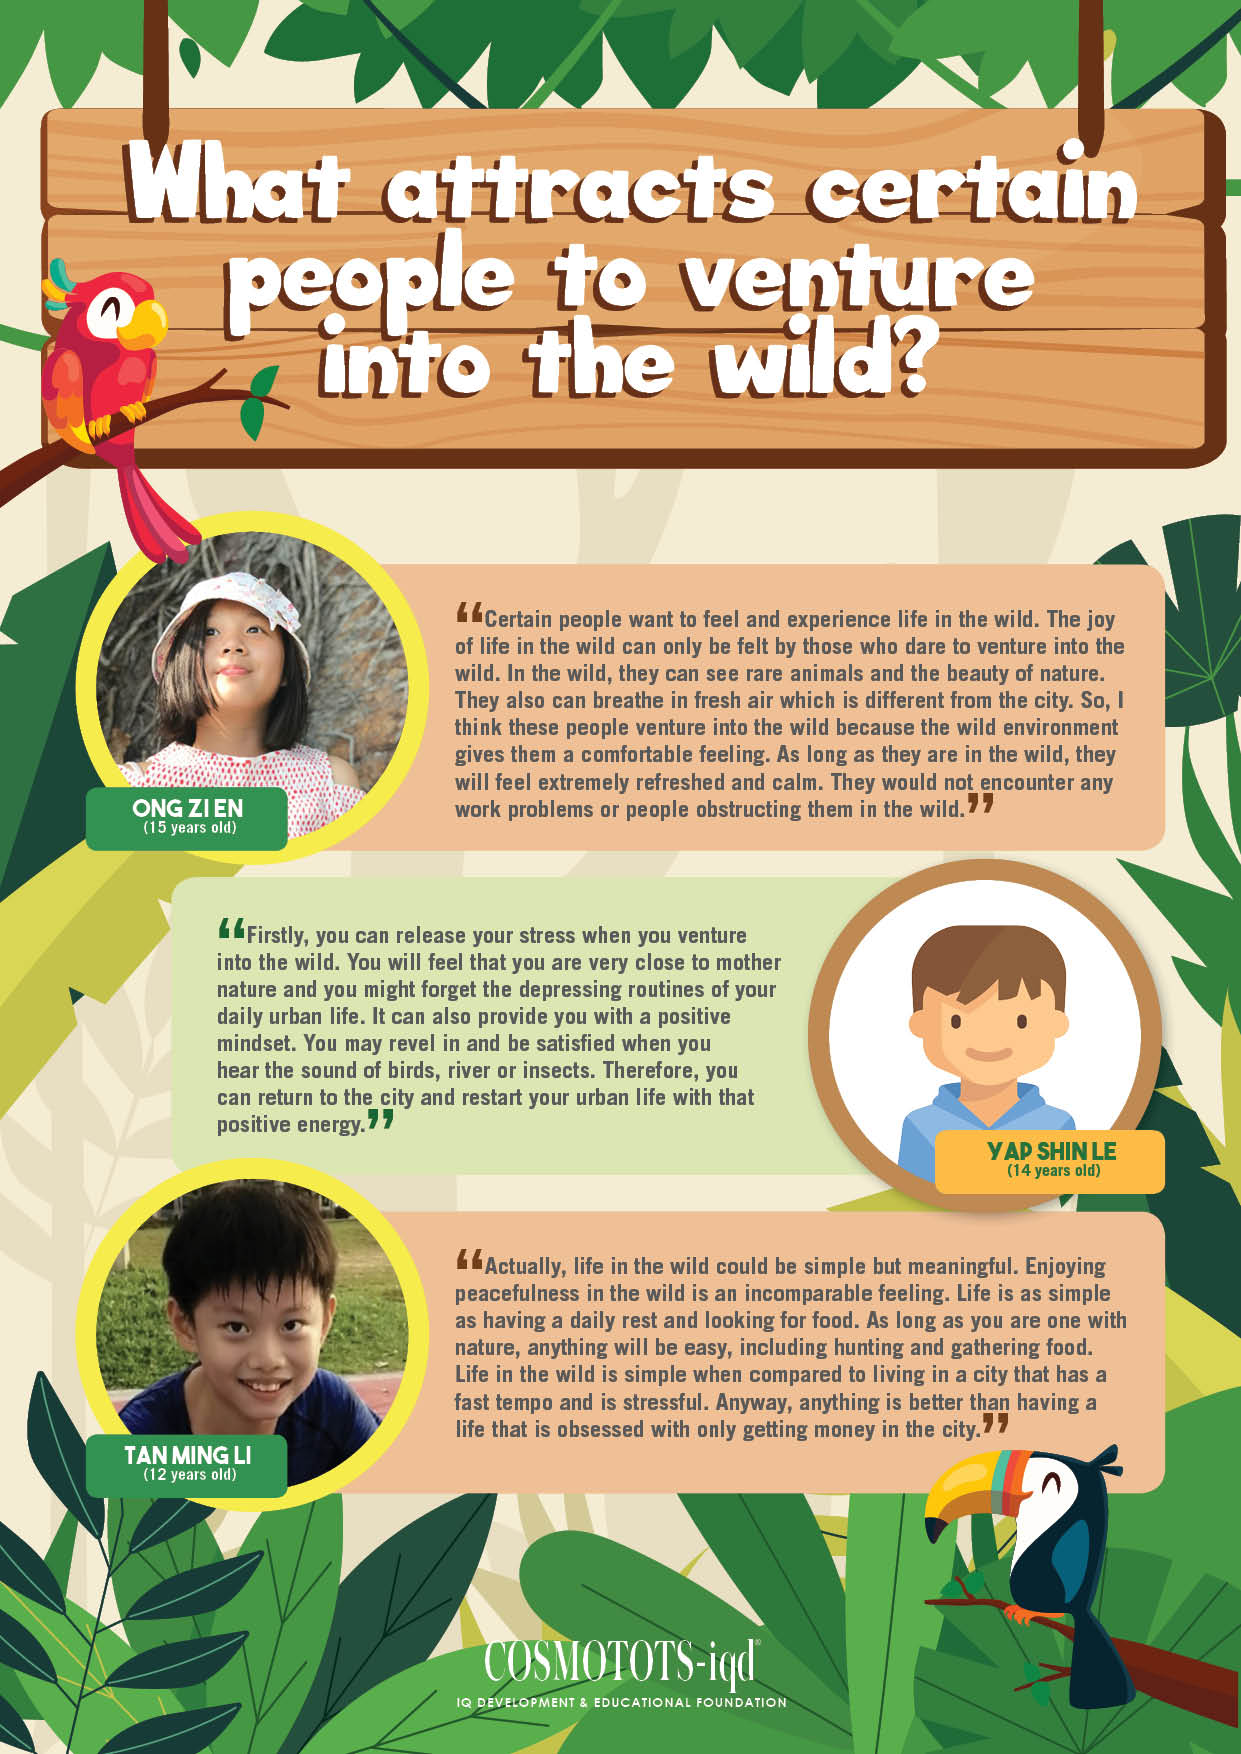 Opinions Poster_Venture into the wild-FINAL